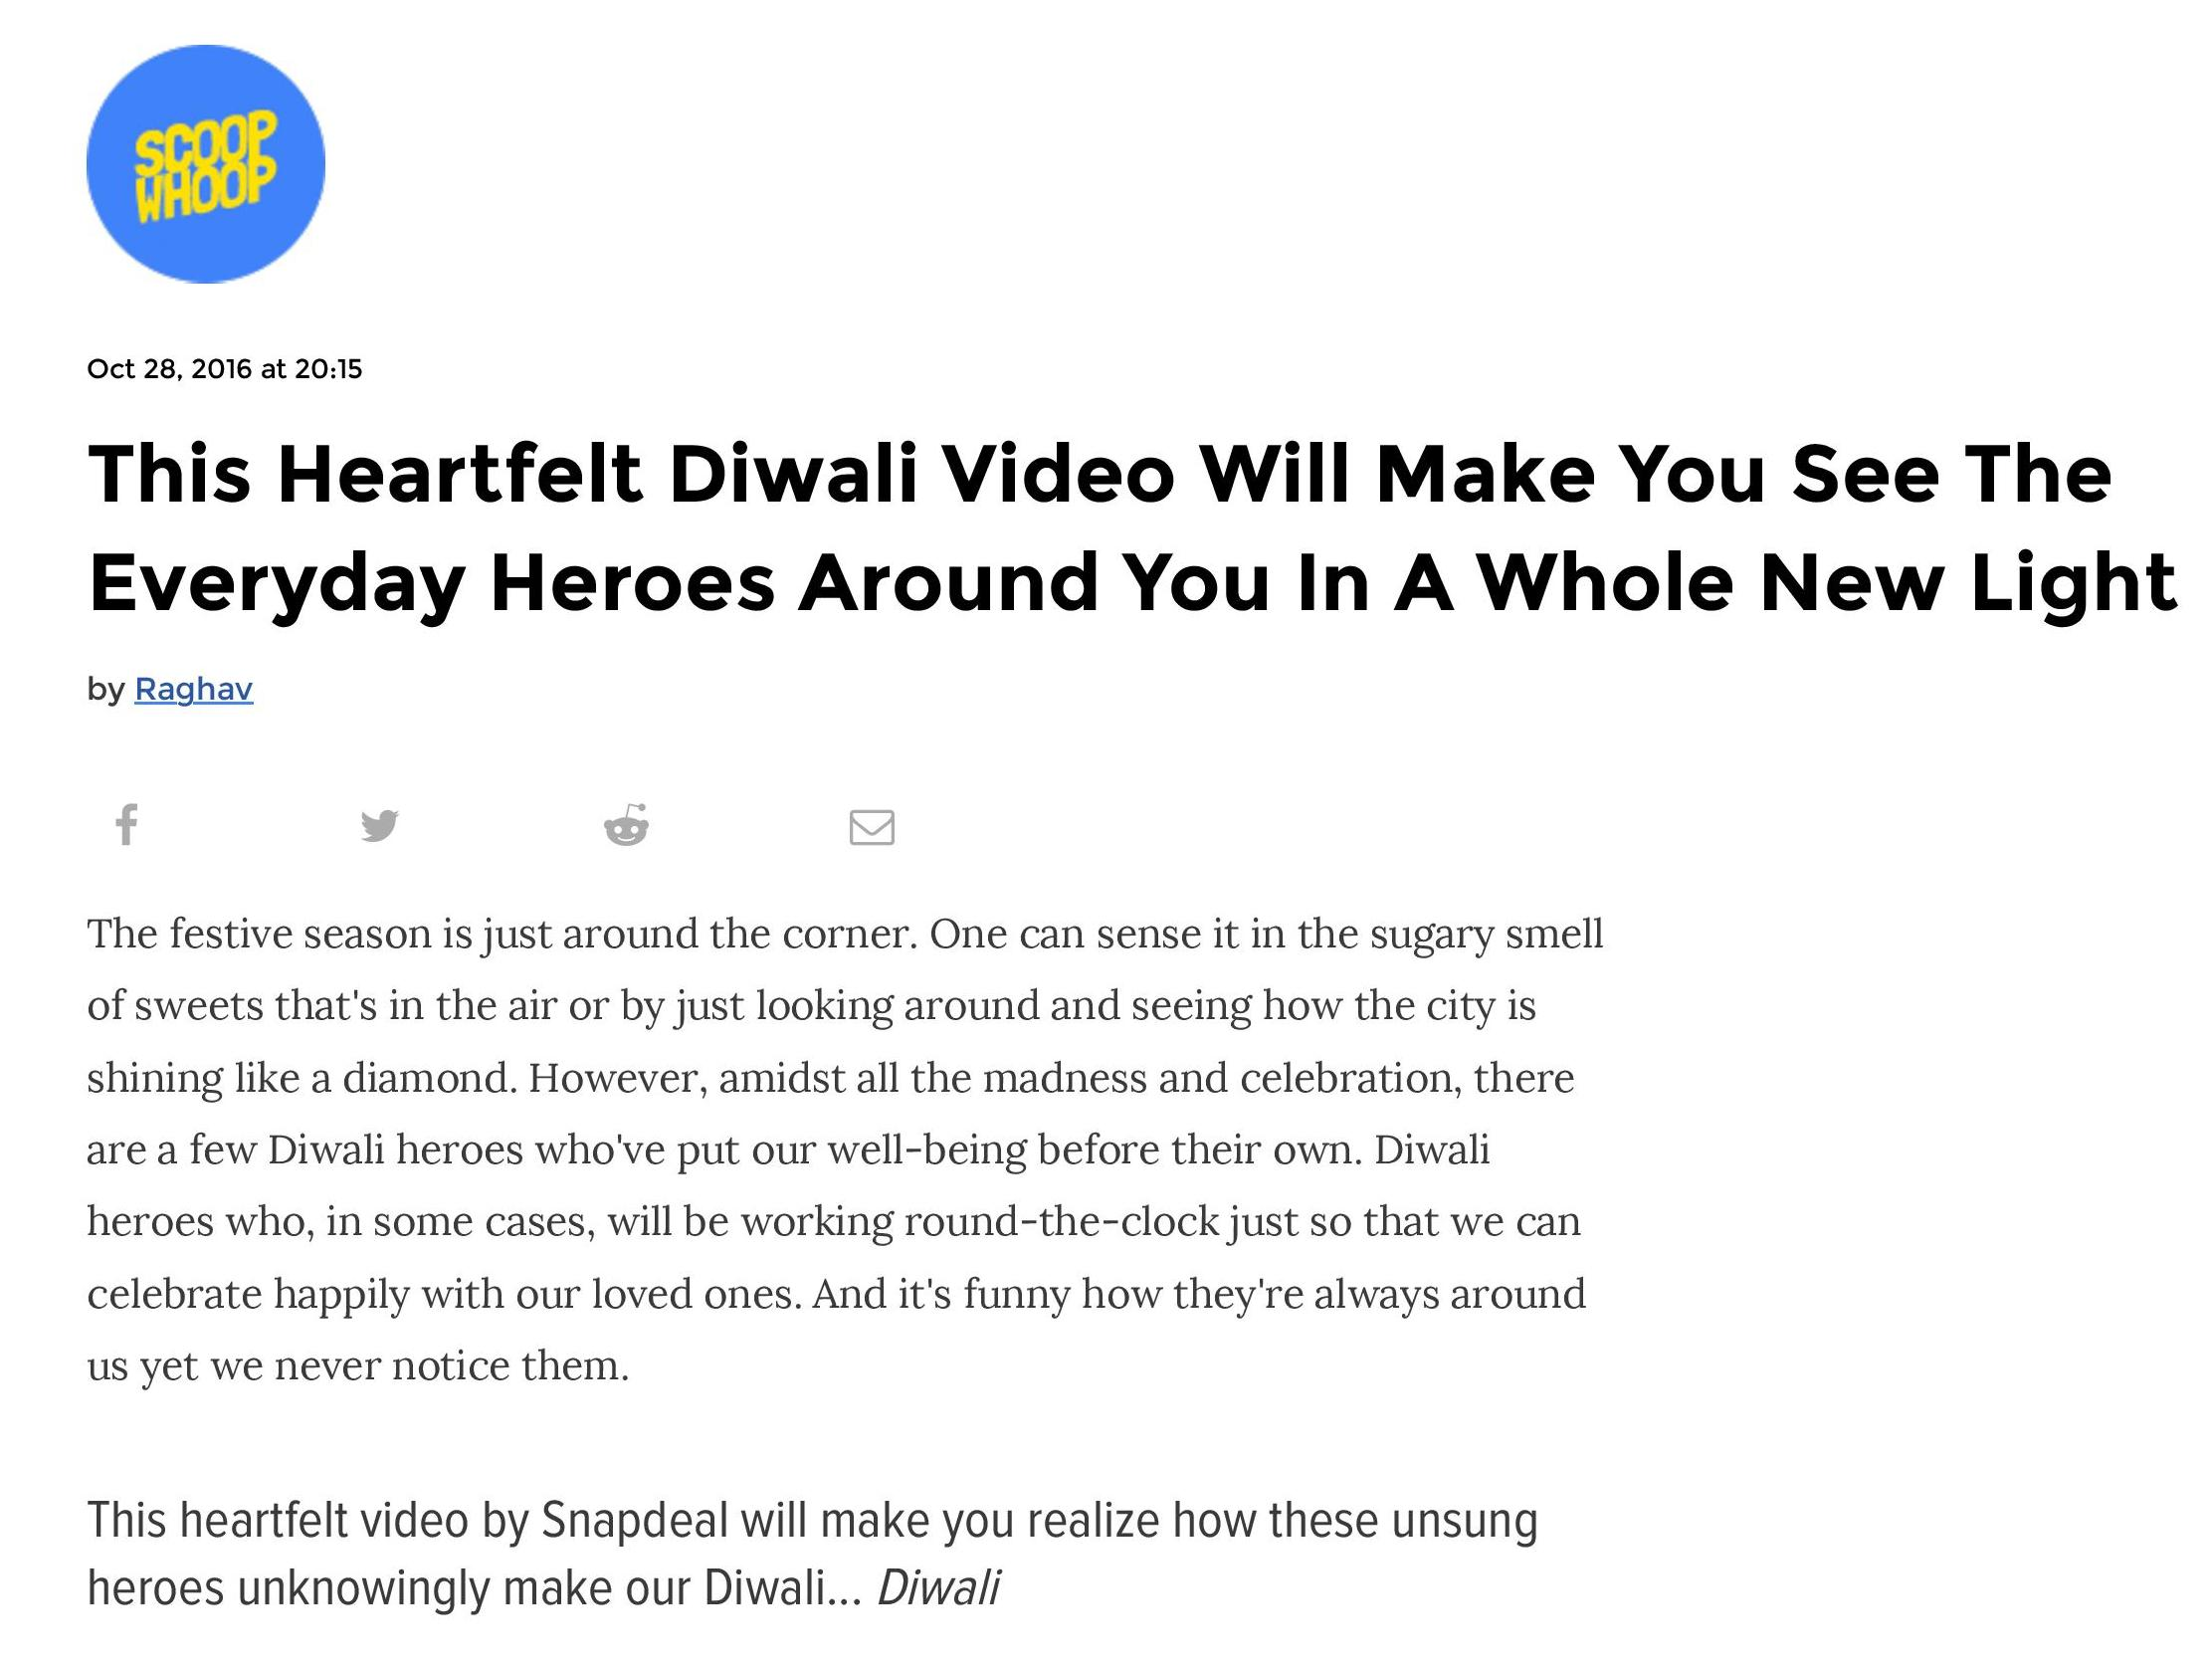 this-heartfelt-diwali-video-will-make-you-see-the-everyday-heroes-around-you-in-a-whole-new-light-page-001